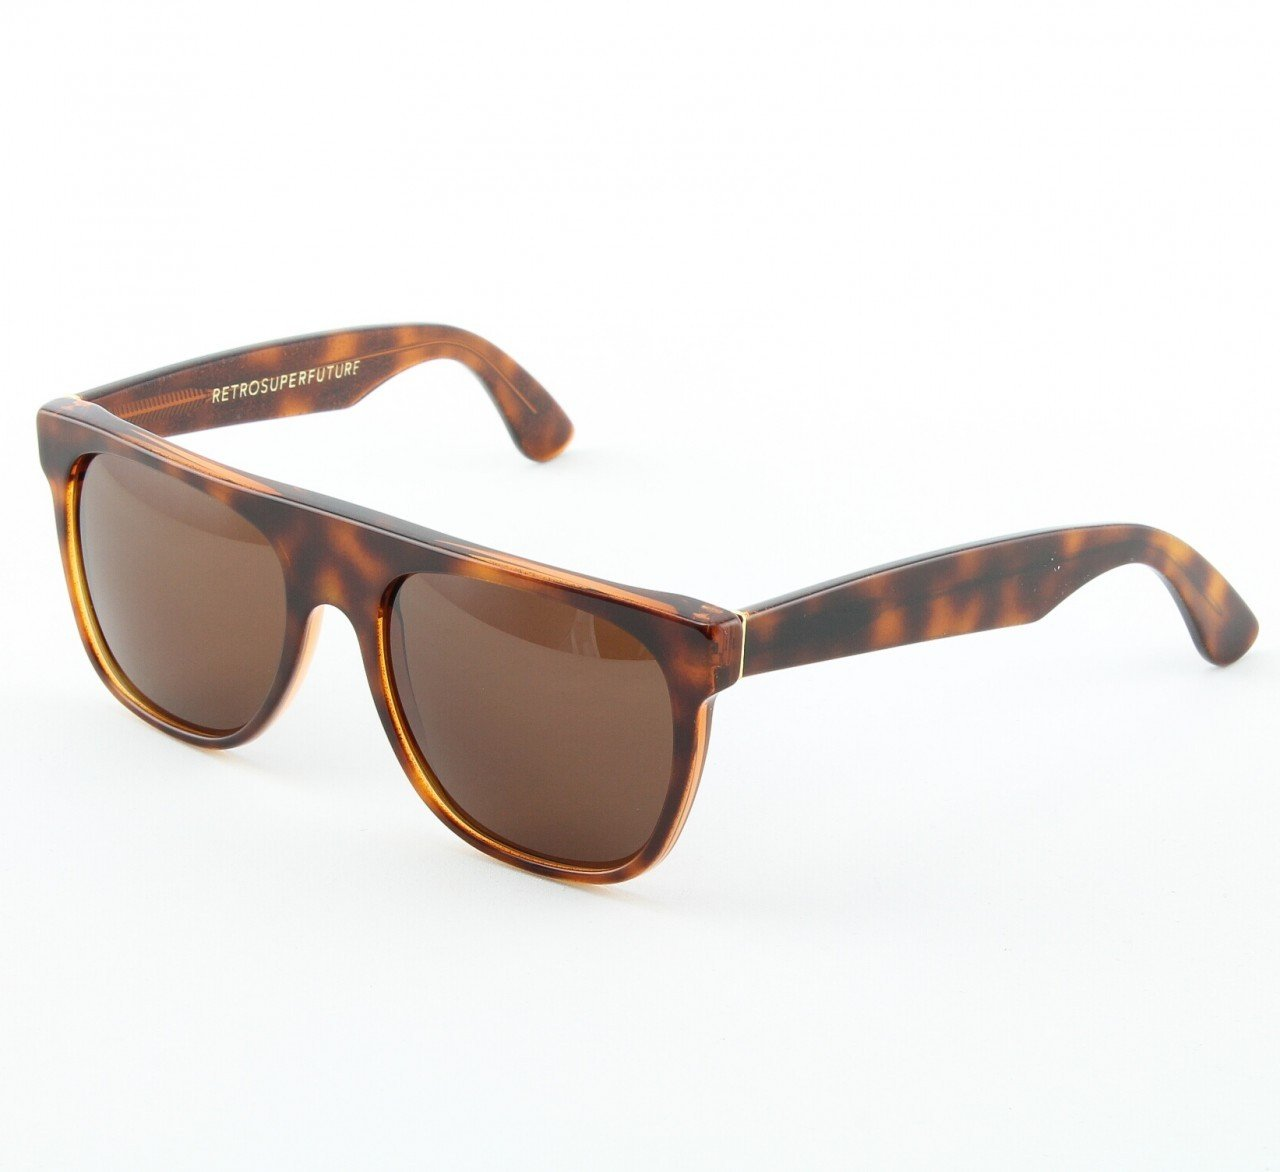 Super Flat Top 188/3 Sunglasses Brown Havana Glitter with Brown Zeiss Lenses by RETROSUPERFUTURE